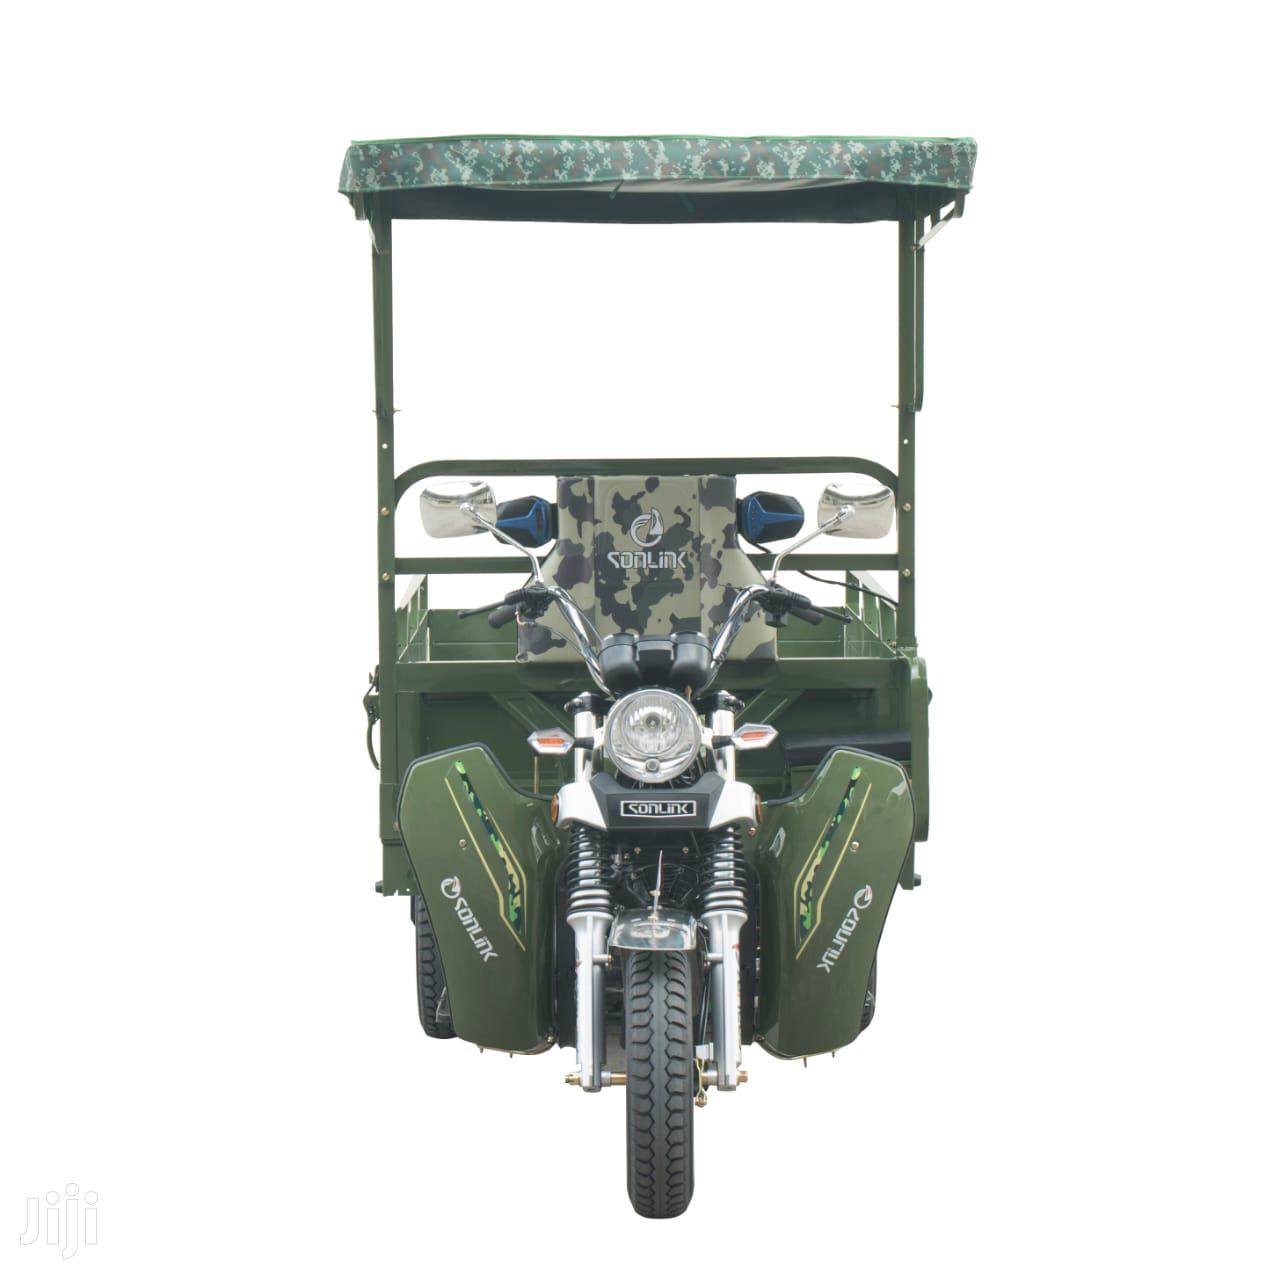 New Sonlink SL200ZH-SC 2019 Green | Motorcycles & Scooters for sale in Nairobi Central, Nairobi, Kenya